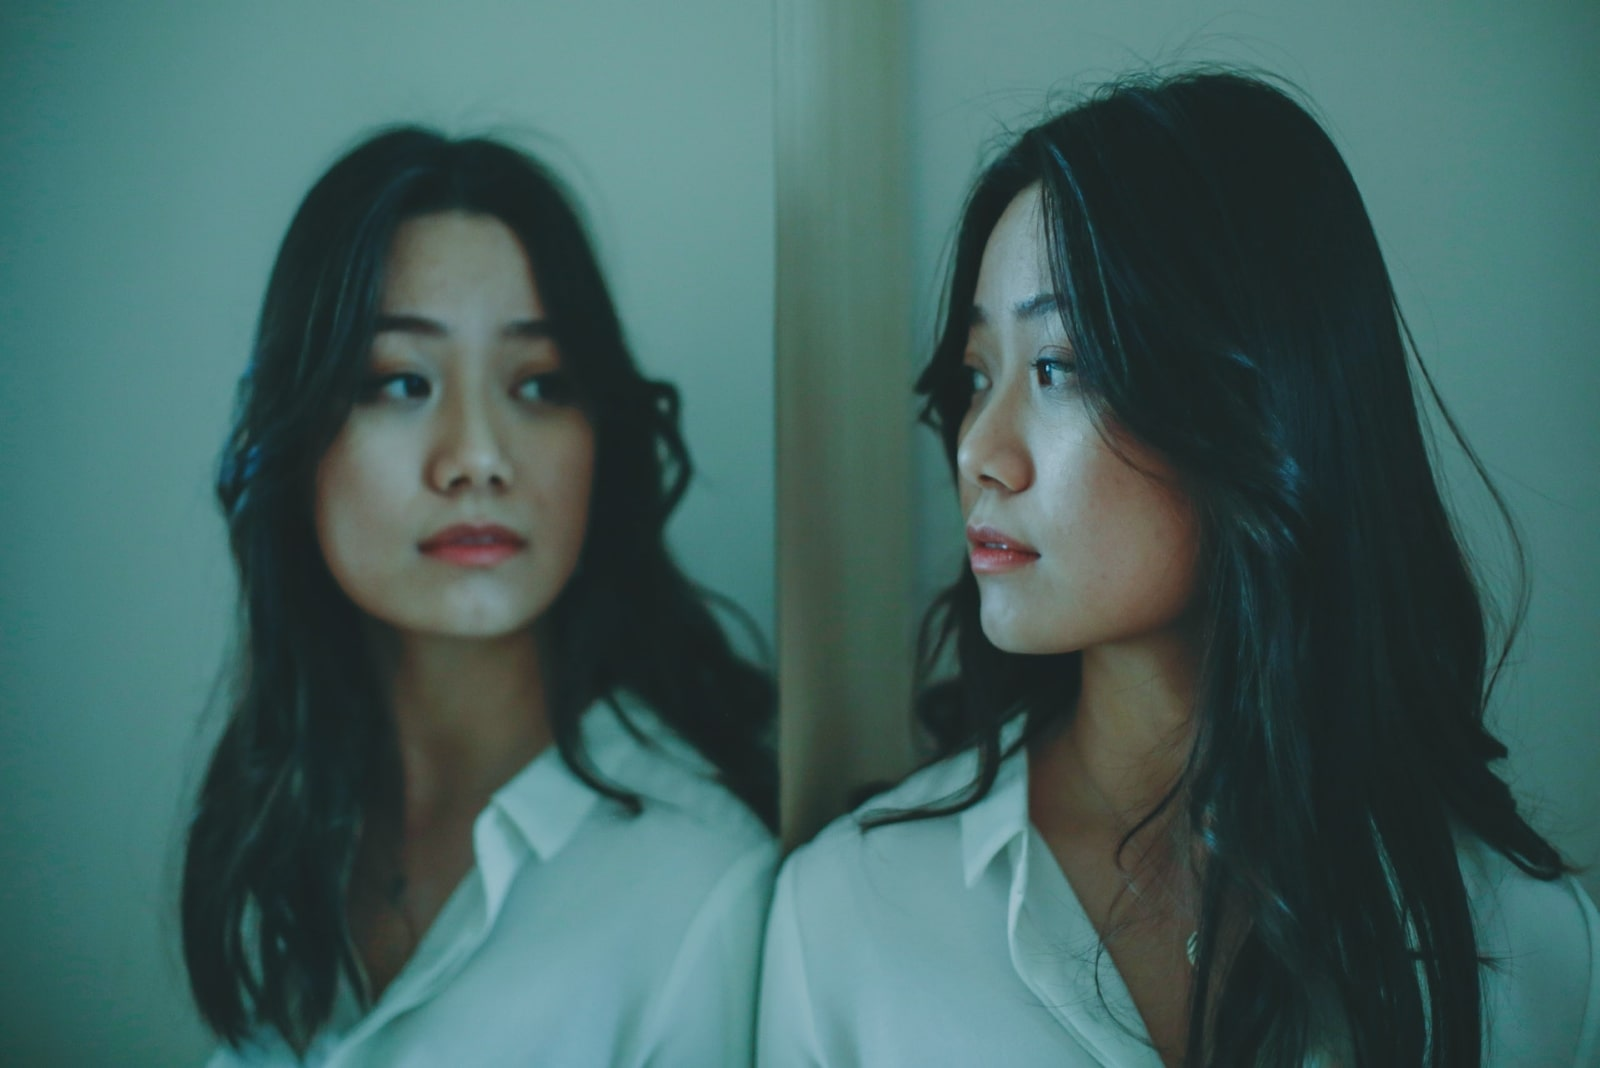 pensive woman in white shirt looking in the mirror